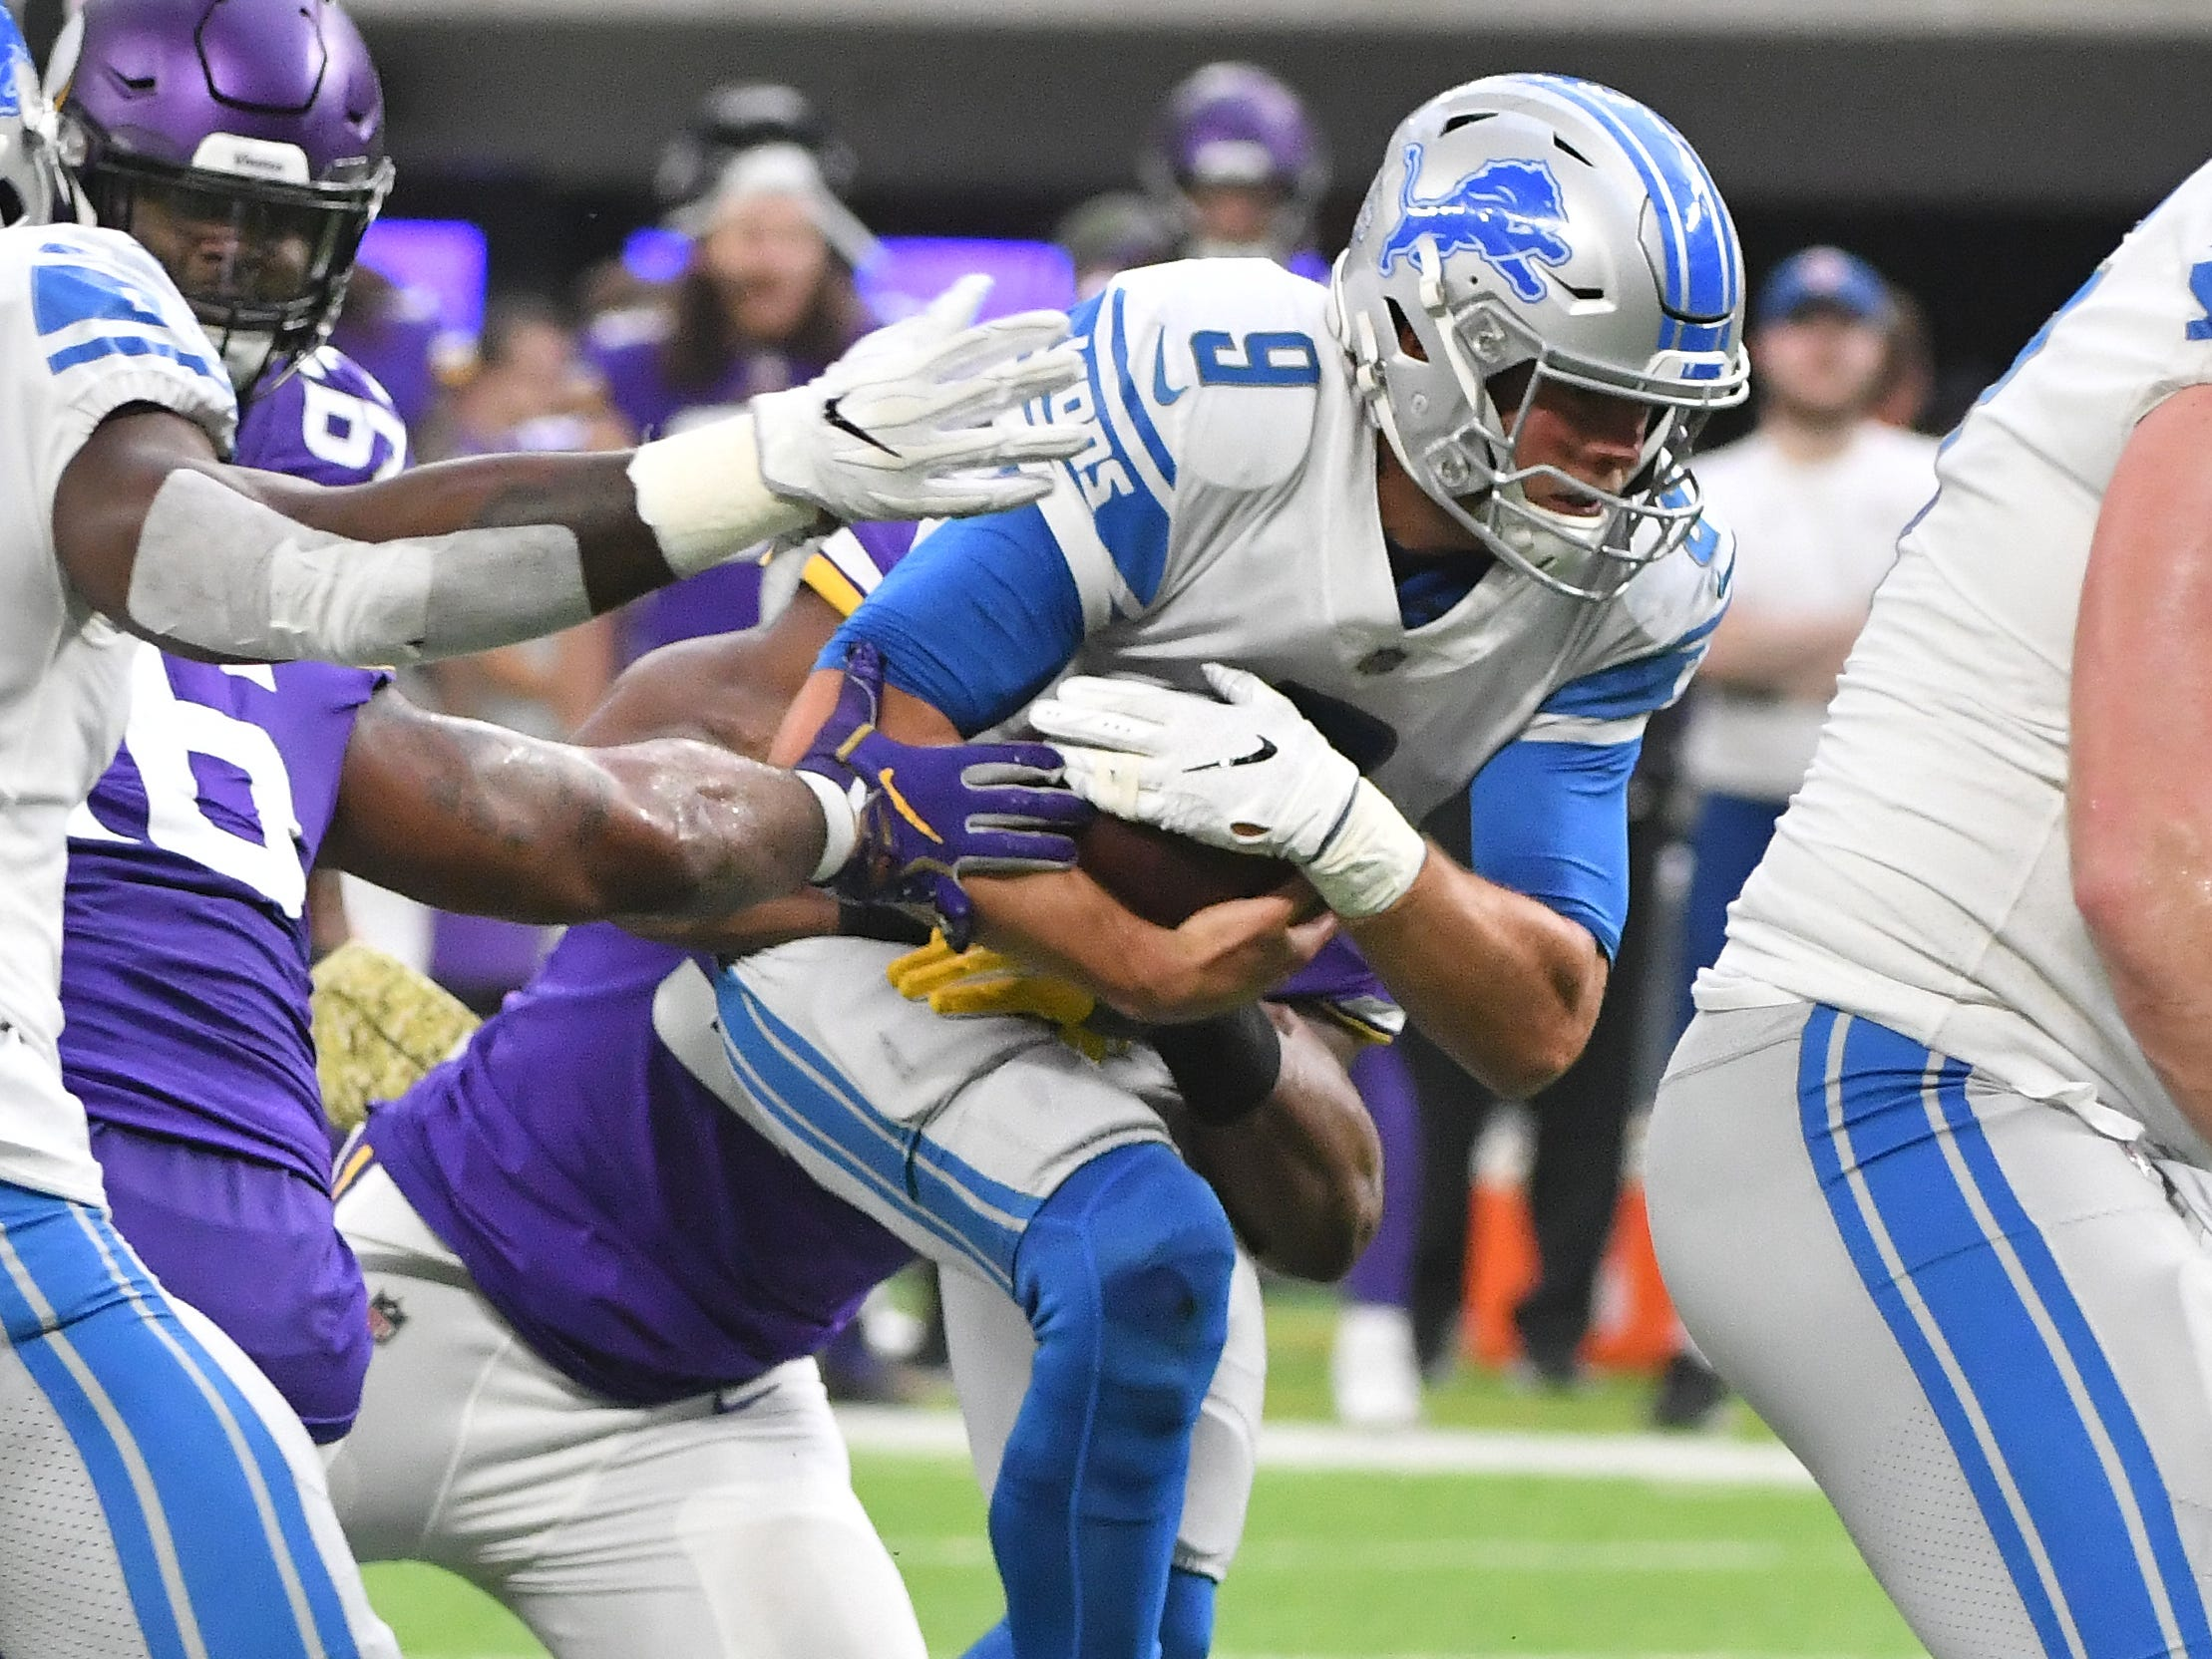 Lions quarterback Matthew Stafford sacked by Vikings' Danielle Hunter in the second quarter.